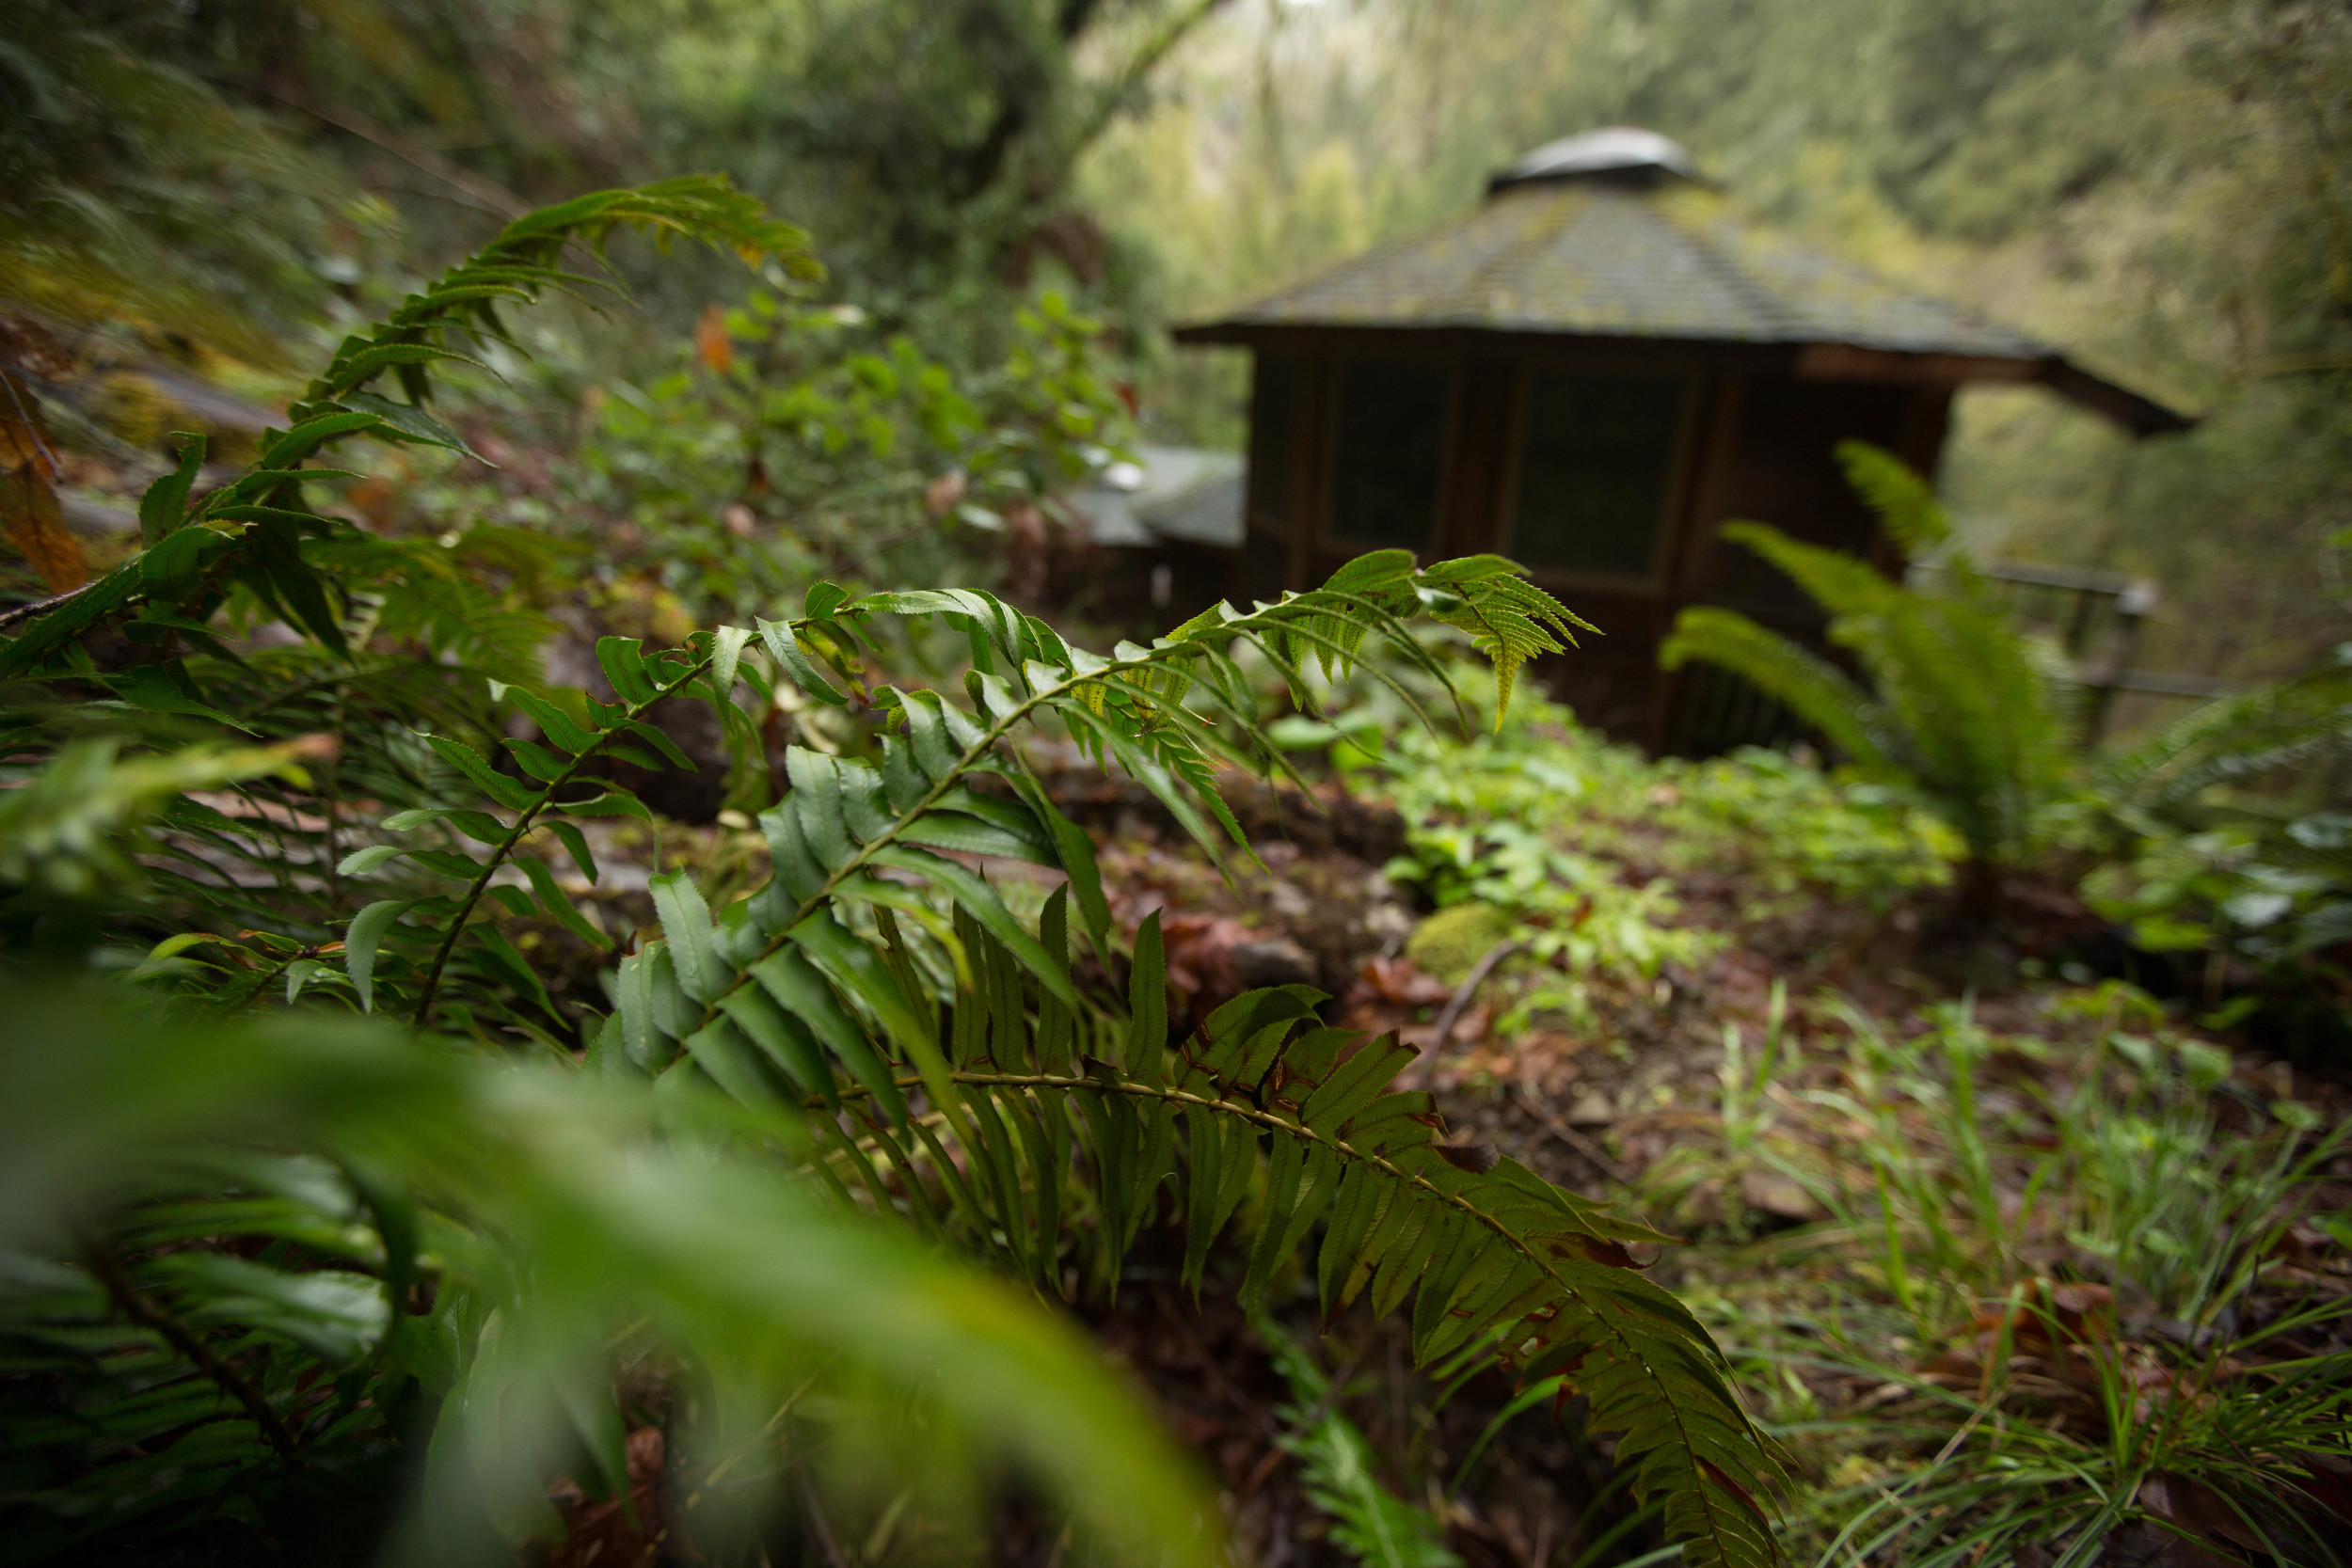 The yurt that we slept in, surrounded by ferns, redwoods and moss.